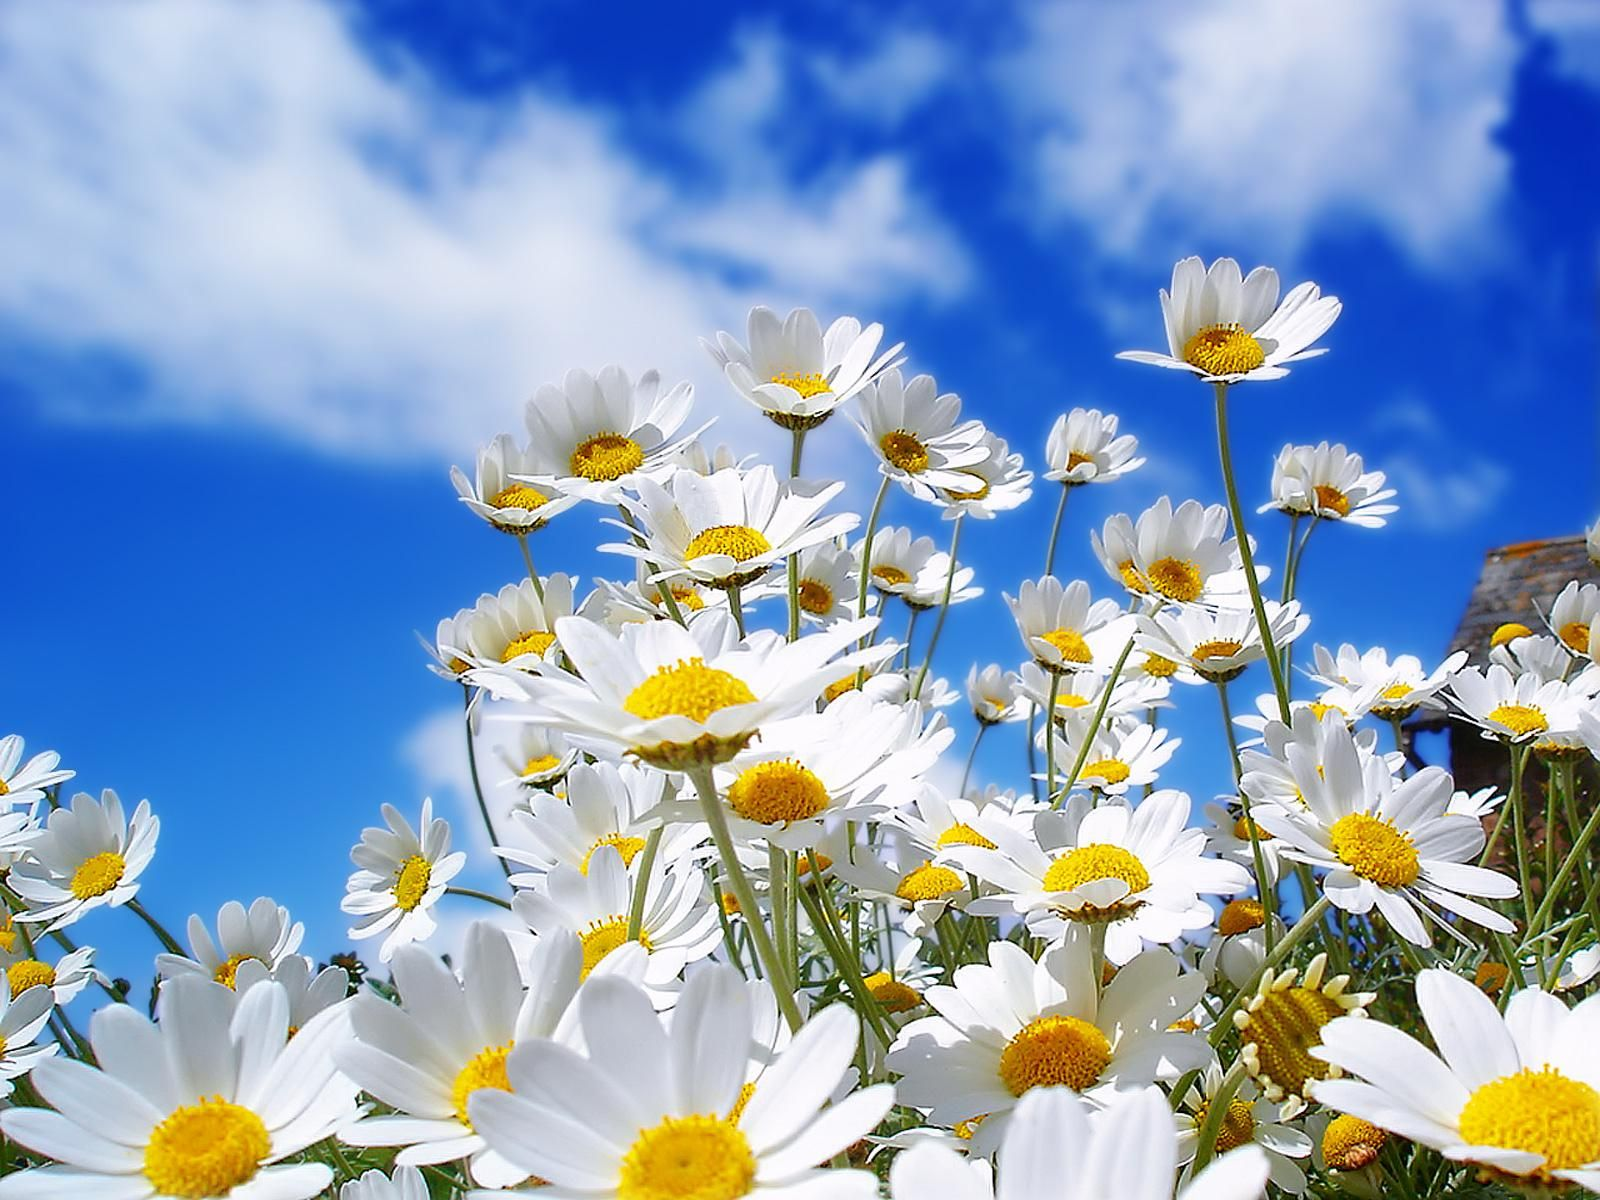 Duck Egg Spring Flowers Spring Flowers Wallpaper Flower Pictures Daisy Flower Pictures